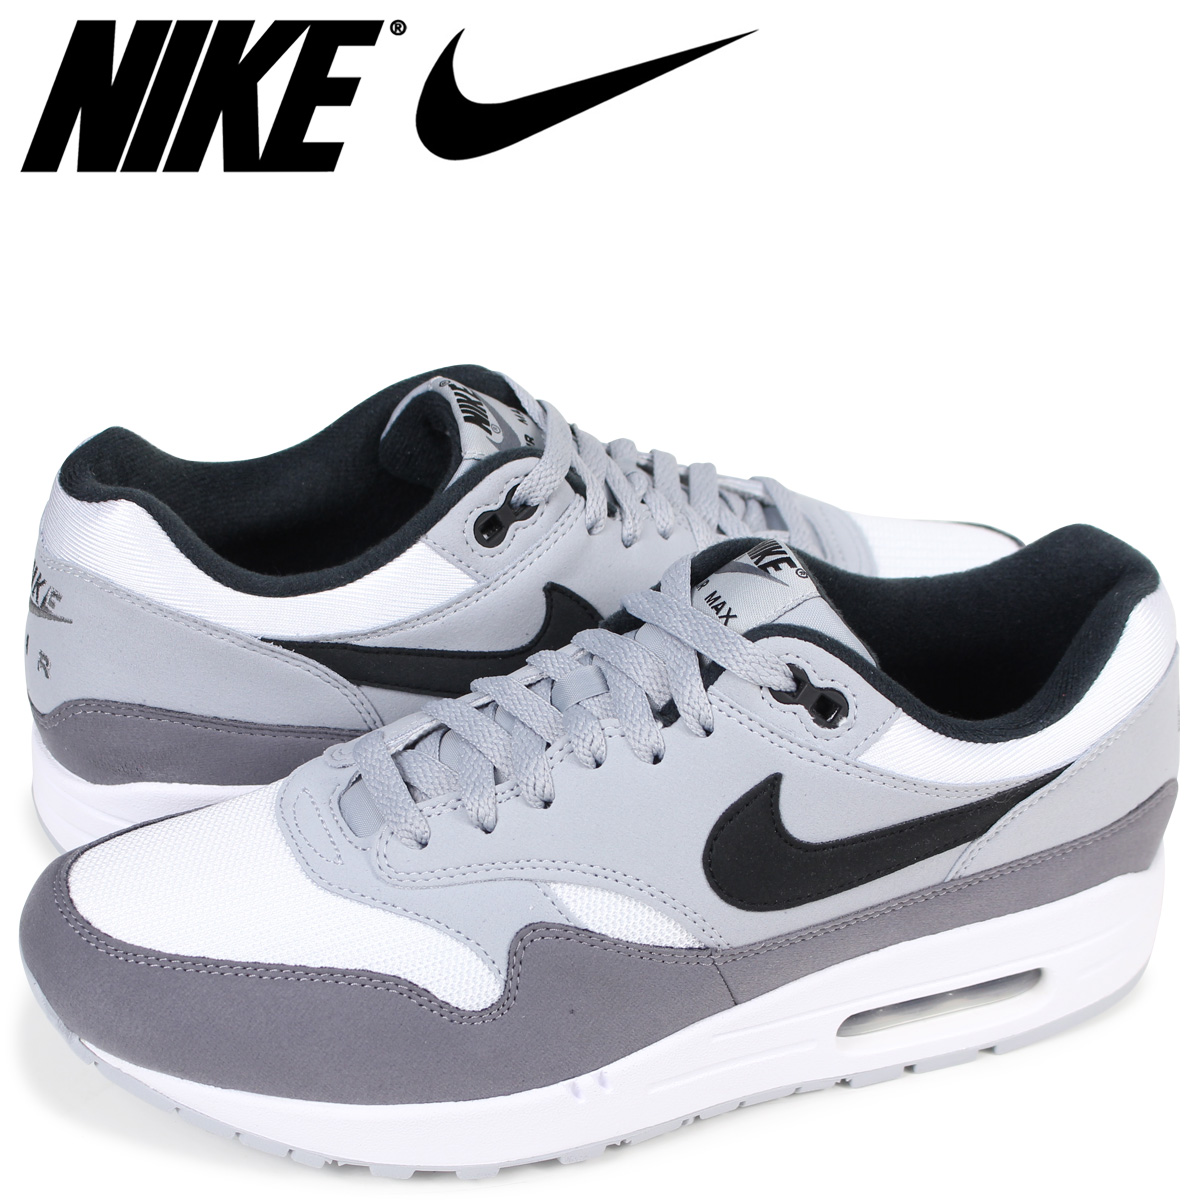 Nike NIKE Air Max 1 sneakers men AIR MAX 1 AH8145 101 white